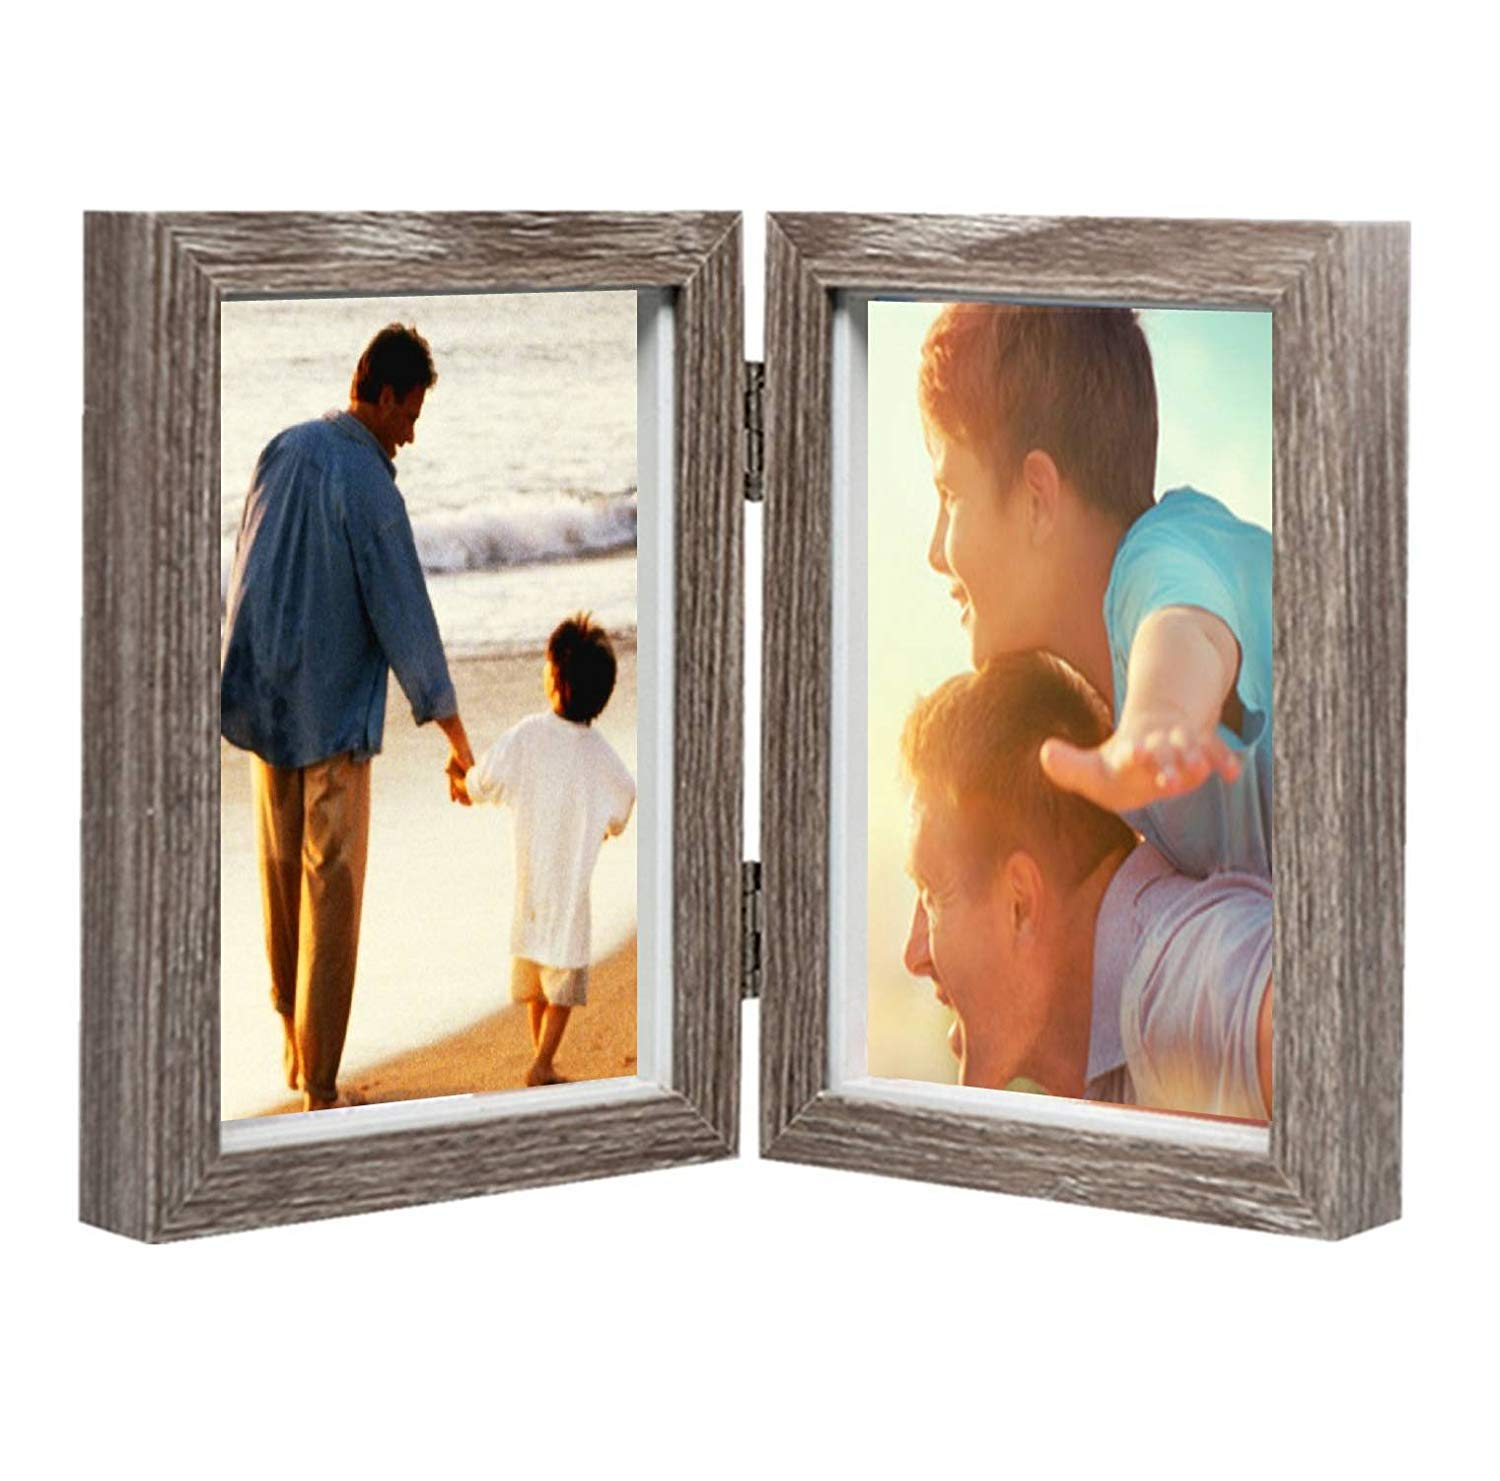 AlexBasic Wood Picture Frame Double 4x6 Hinged Picture Frame Desktop Photo Frame with Glass Front Dual Frame (Gray)